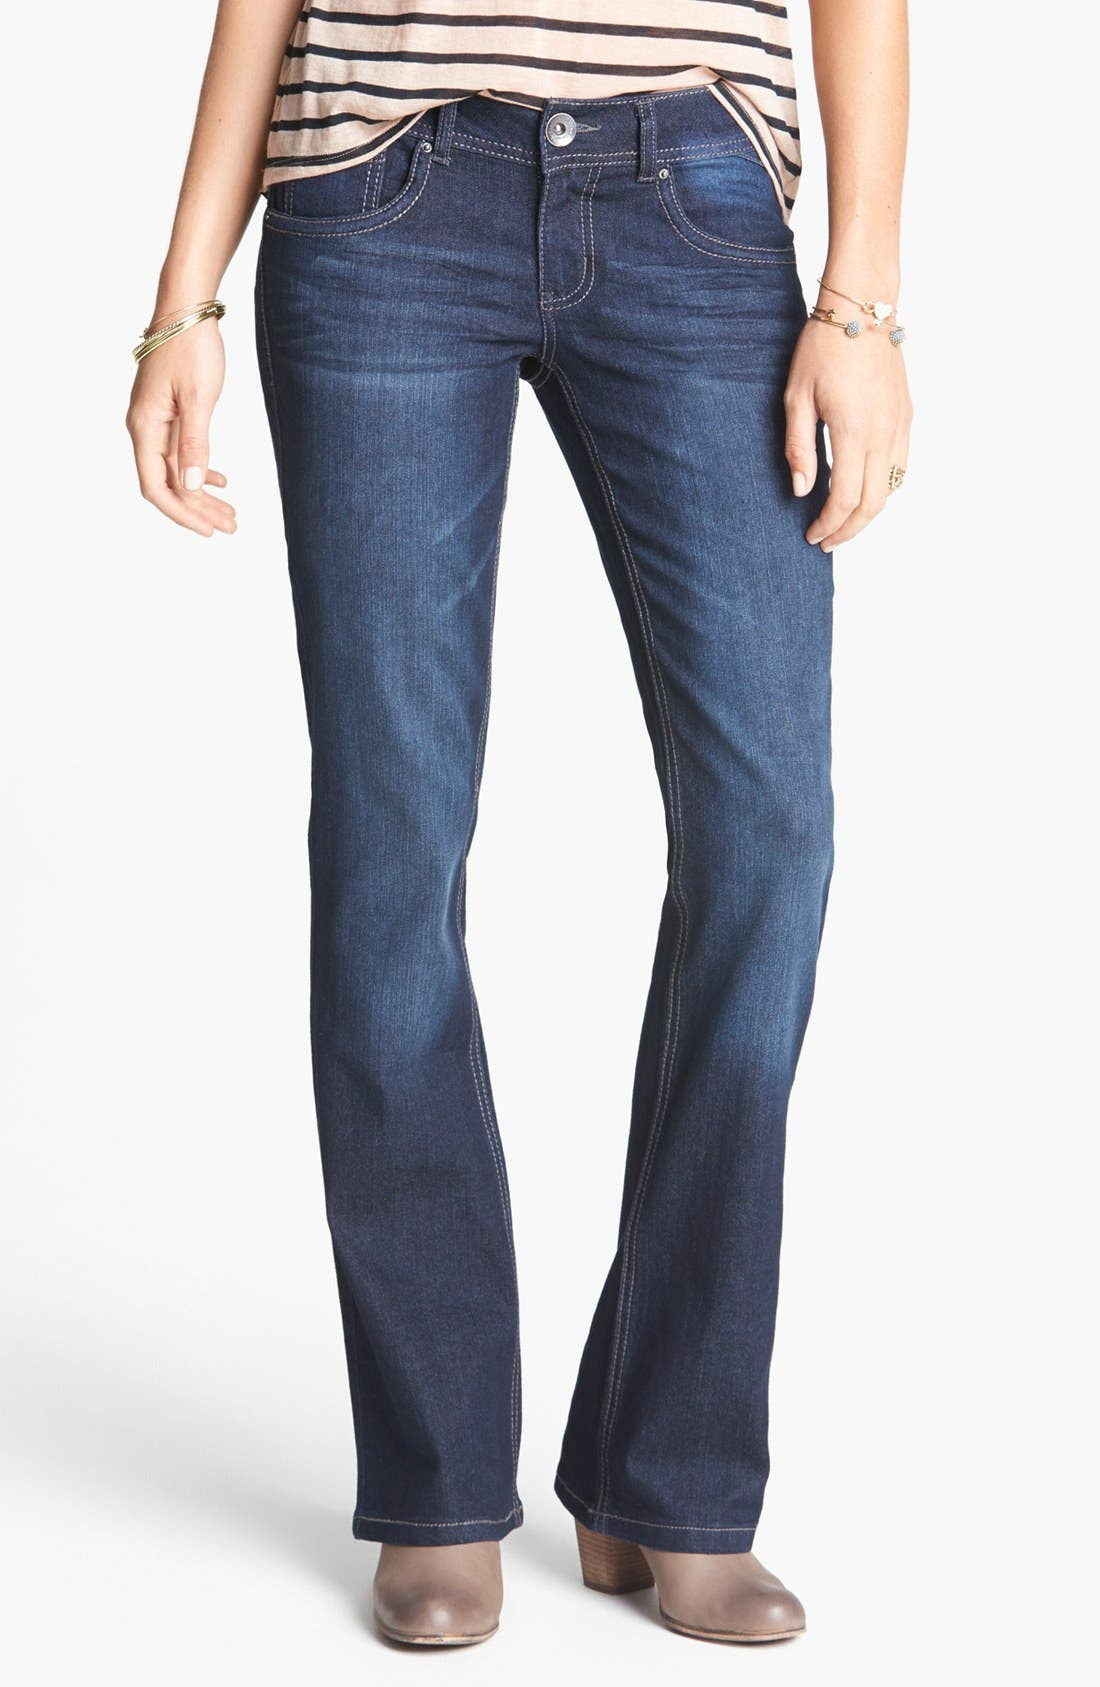 Alternate Image 1 Selected - Jolt Embroidered Pocket Bootcut Jeans (Juniors)